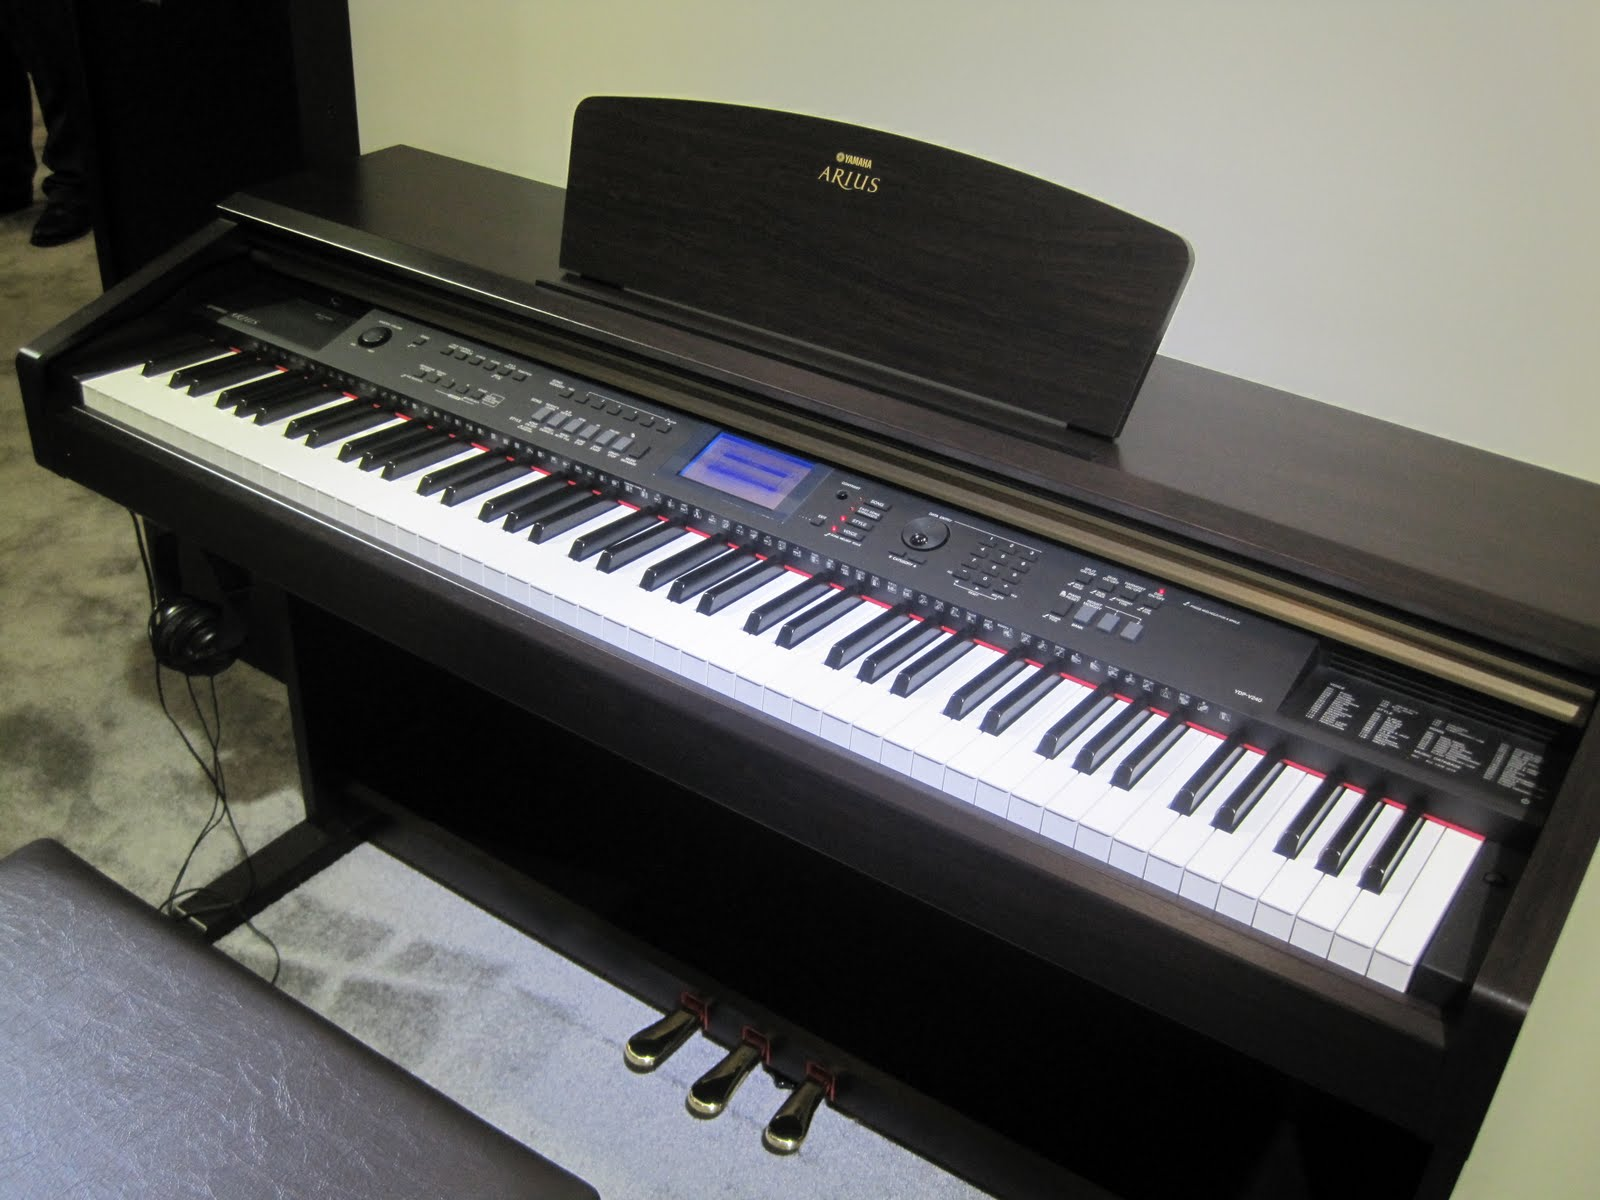 az piano reviews review yamaha ydp181 ydpv240 dgx640 digital pianos yamaha 39 s 3 best. Black Bedroom Furniture Sets. Home Design Ideas